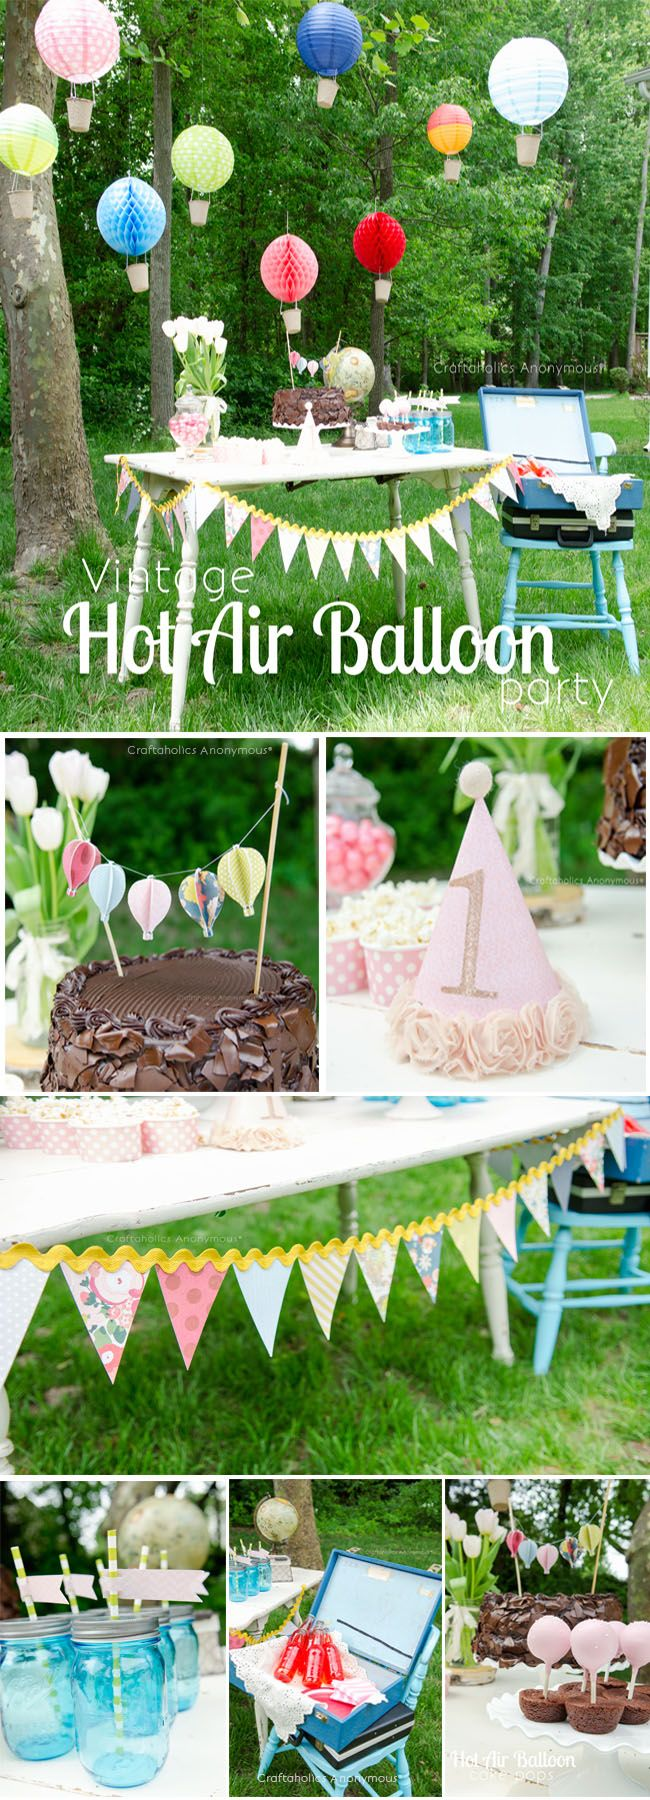 Vintage Hot Air balloon 1st birthday party. So many awesome Ideas!